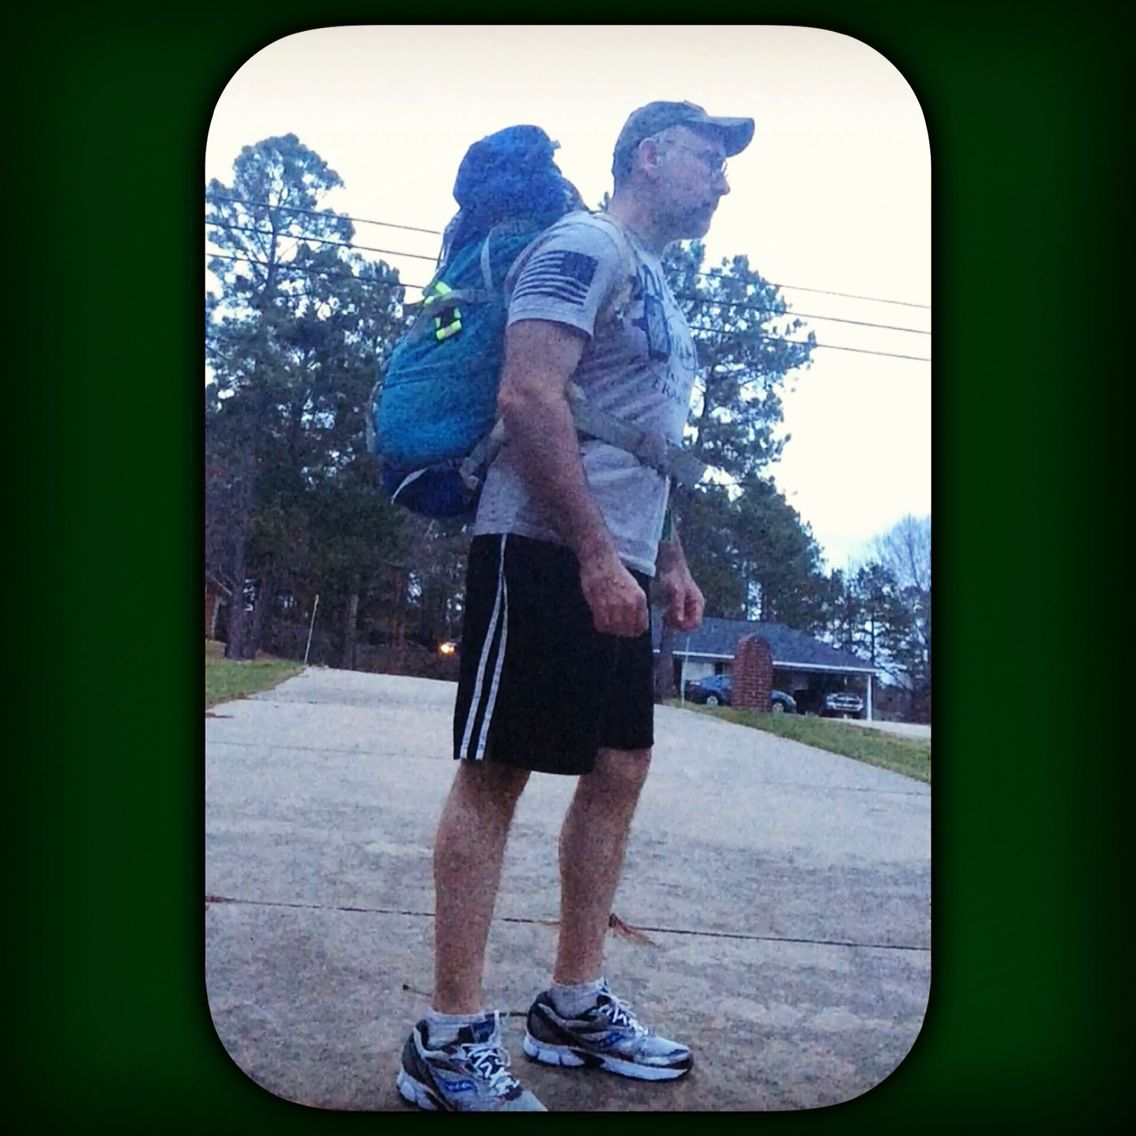 """Another little walkabout for the """"All Roads Lead to Rome"""" Virtual 27.3 mile challenge.  So far I've done 7.3 miles and have 20 to go.   I forgot how tough ruck marching is, not only physically, but mentally as well.  I've only been doing this challenge for a couple of days and my legs are screaming sore.   It's good stuff. These challenges help me push myself.   #ruckmarch #rucksack #hiking #walking #fit #exercise #workout #fitness #health #weightloss #dempseysresolutionfitness"""